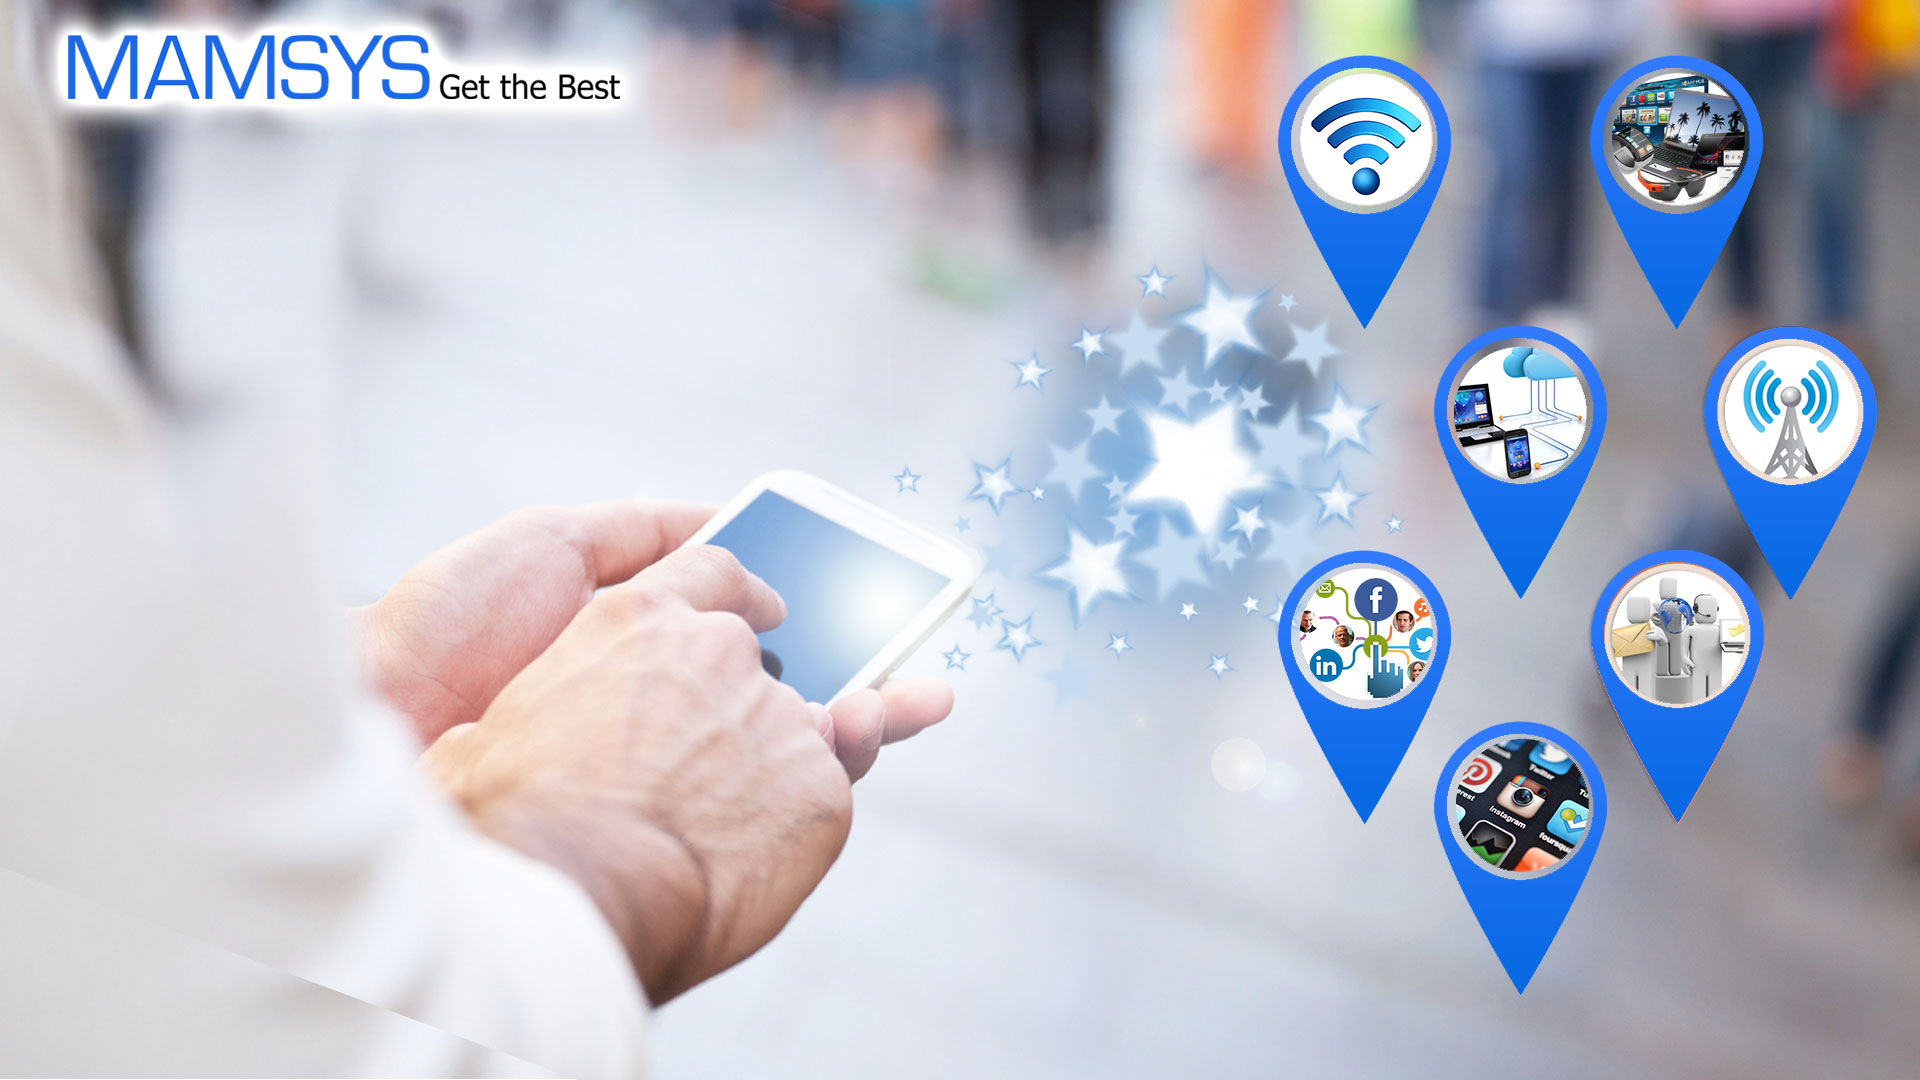 Top 7 Mobility Trends to Look Forward in 2015